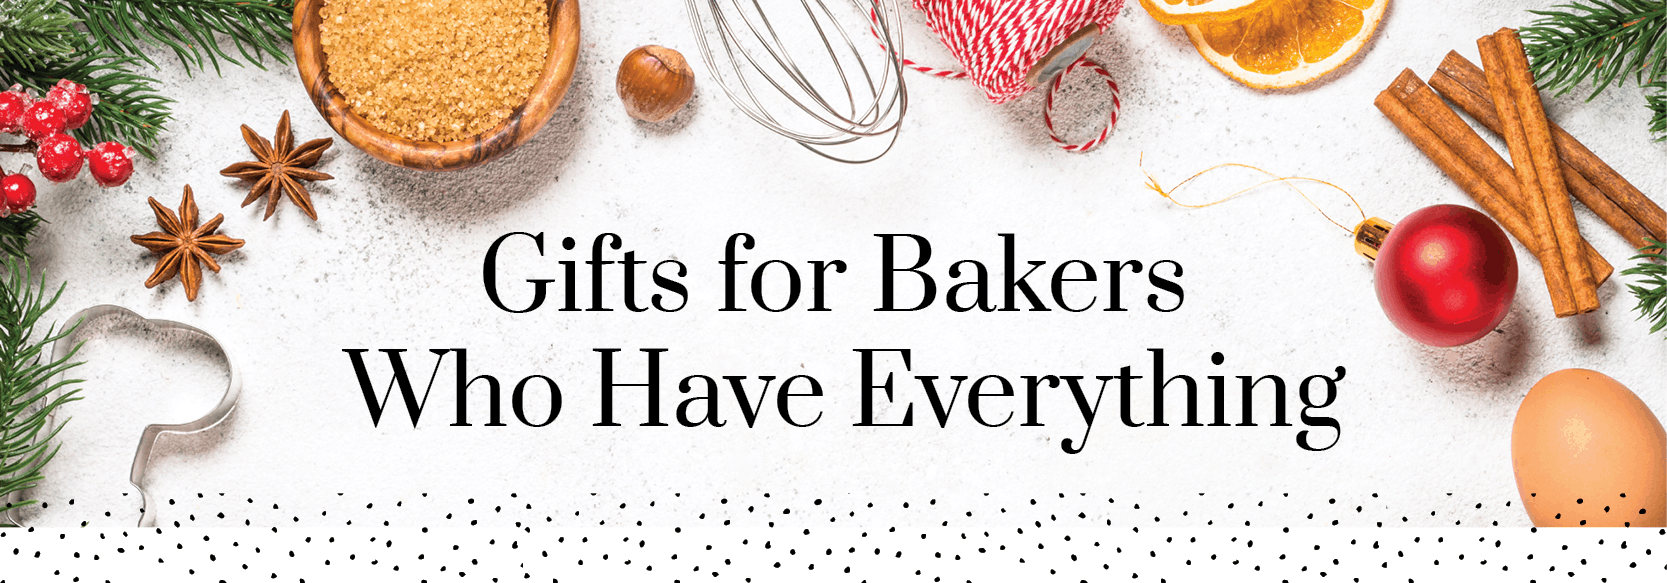 Gifts for Bakers Who Have Everything